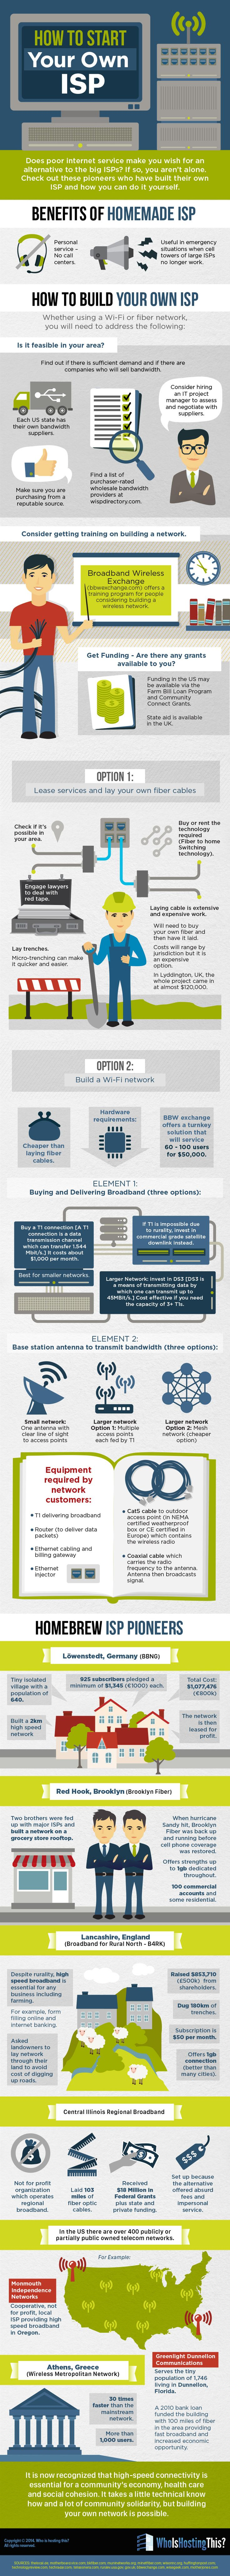 How to Start Your Own ISP #infographic